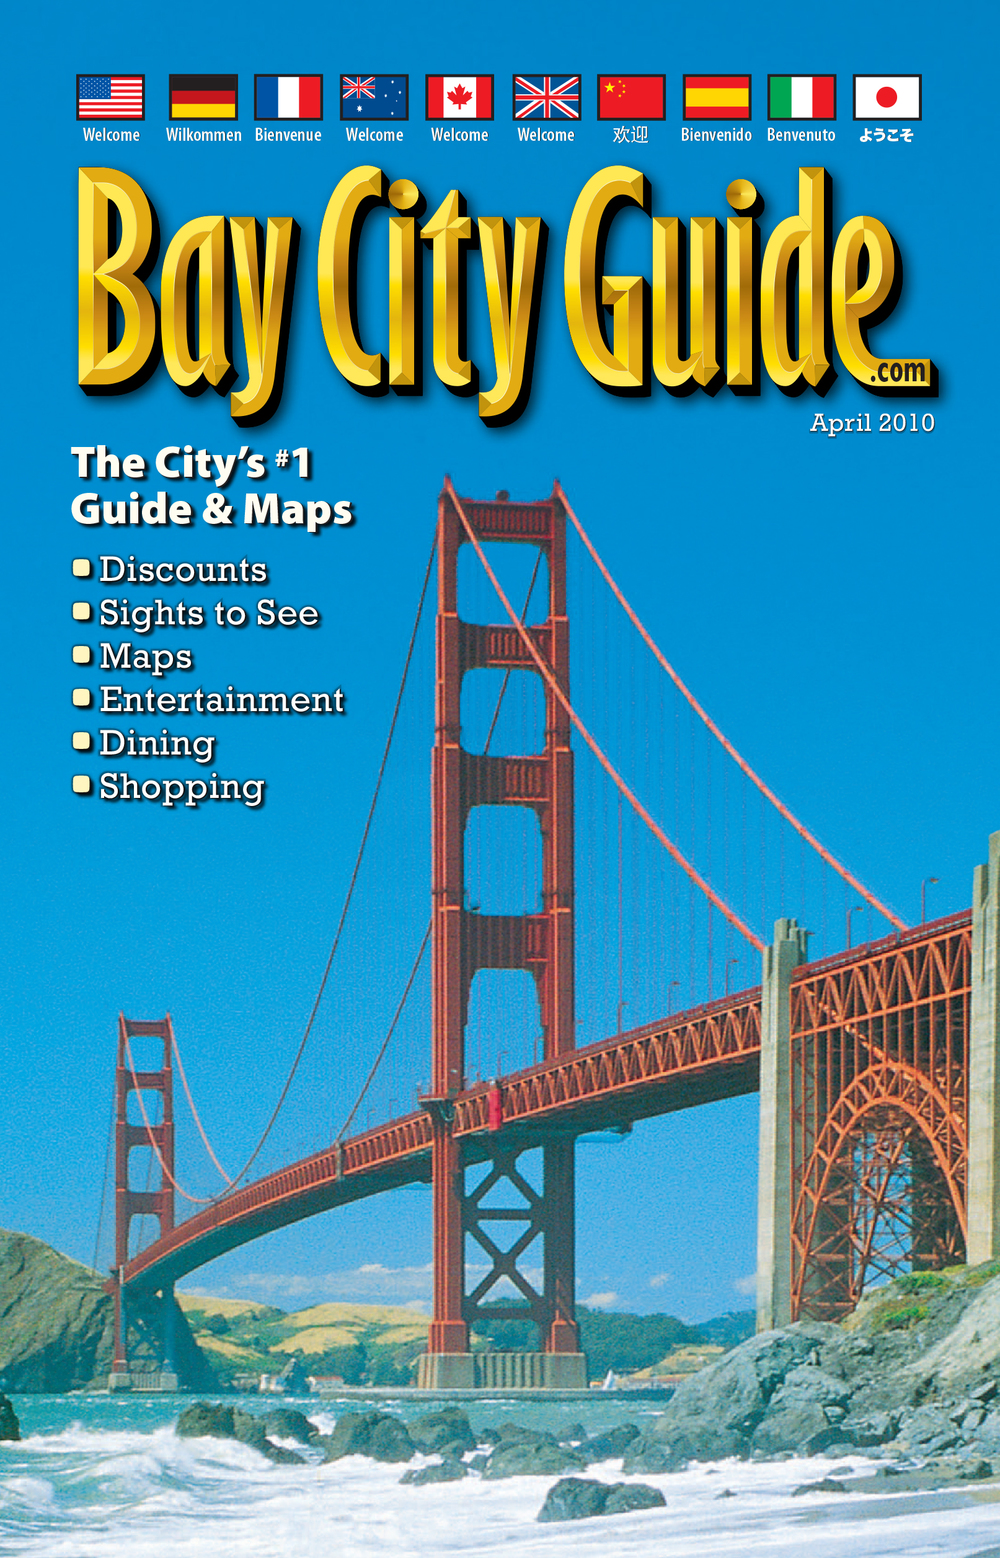 Bay City Guide magazine cover